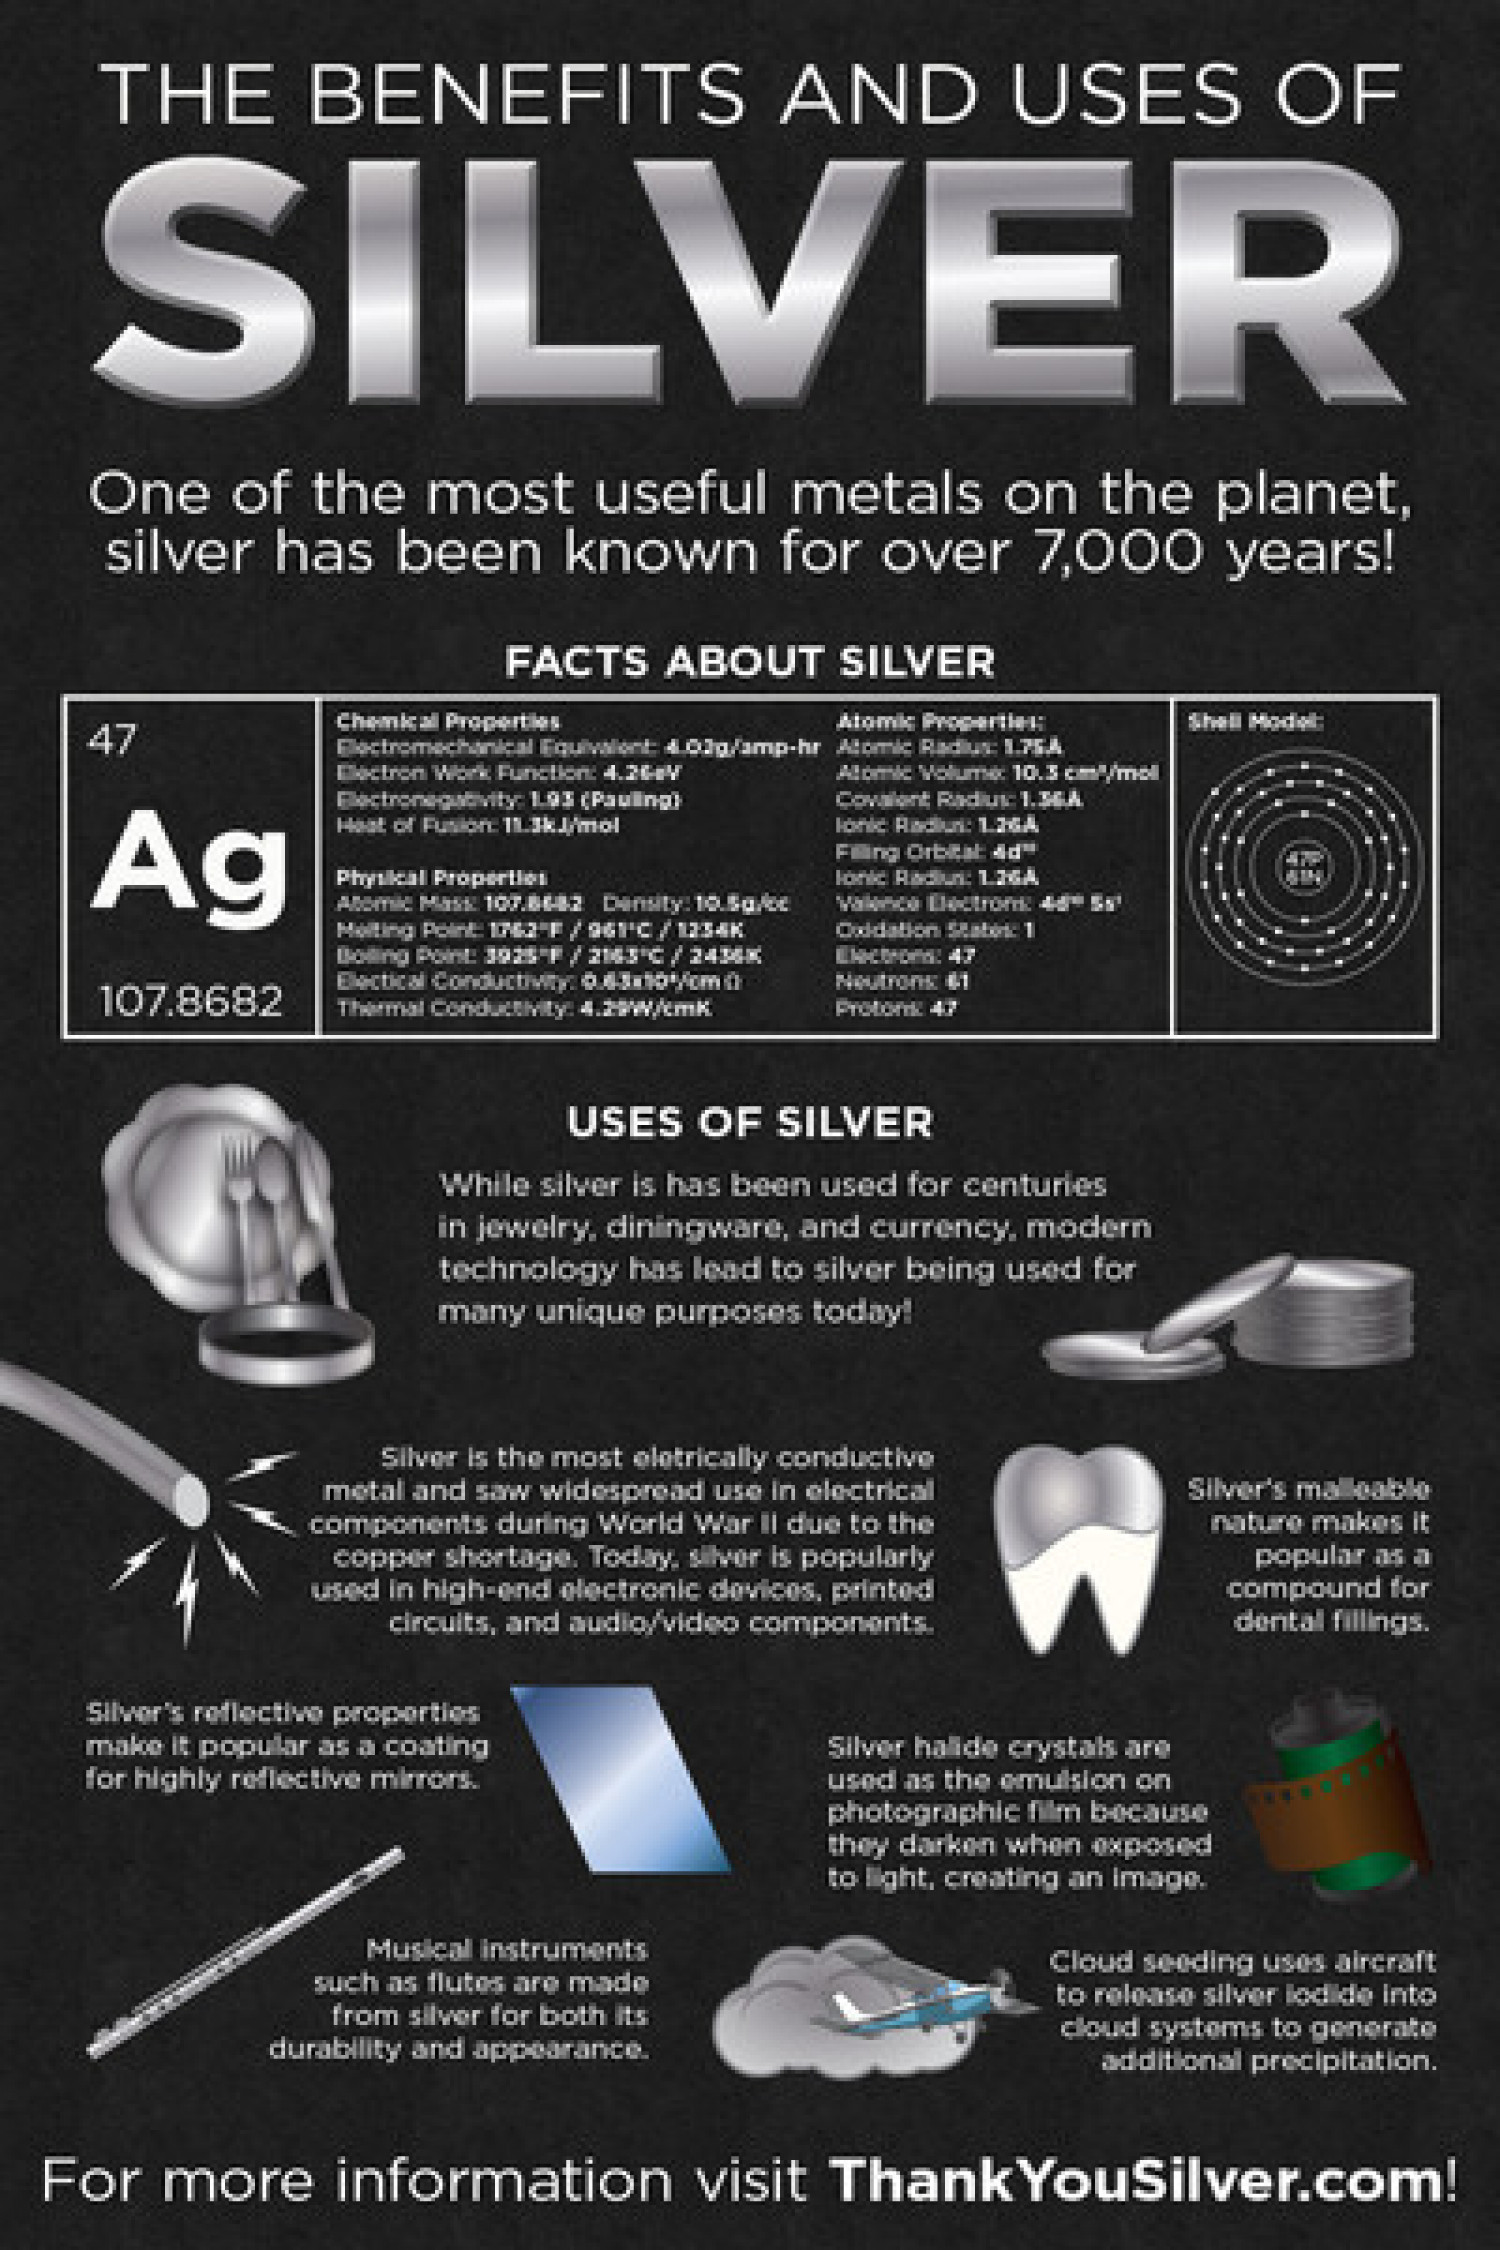 Silver Uses and Benefits Infographic